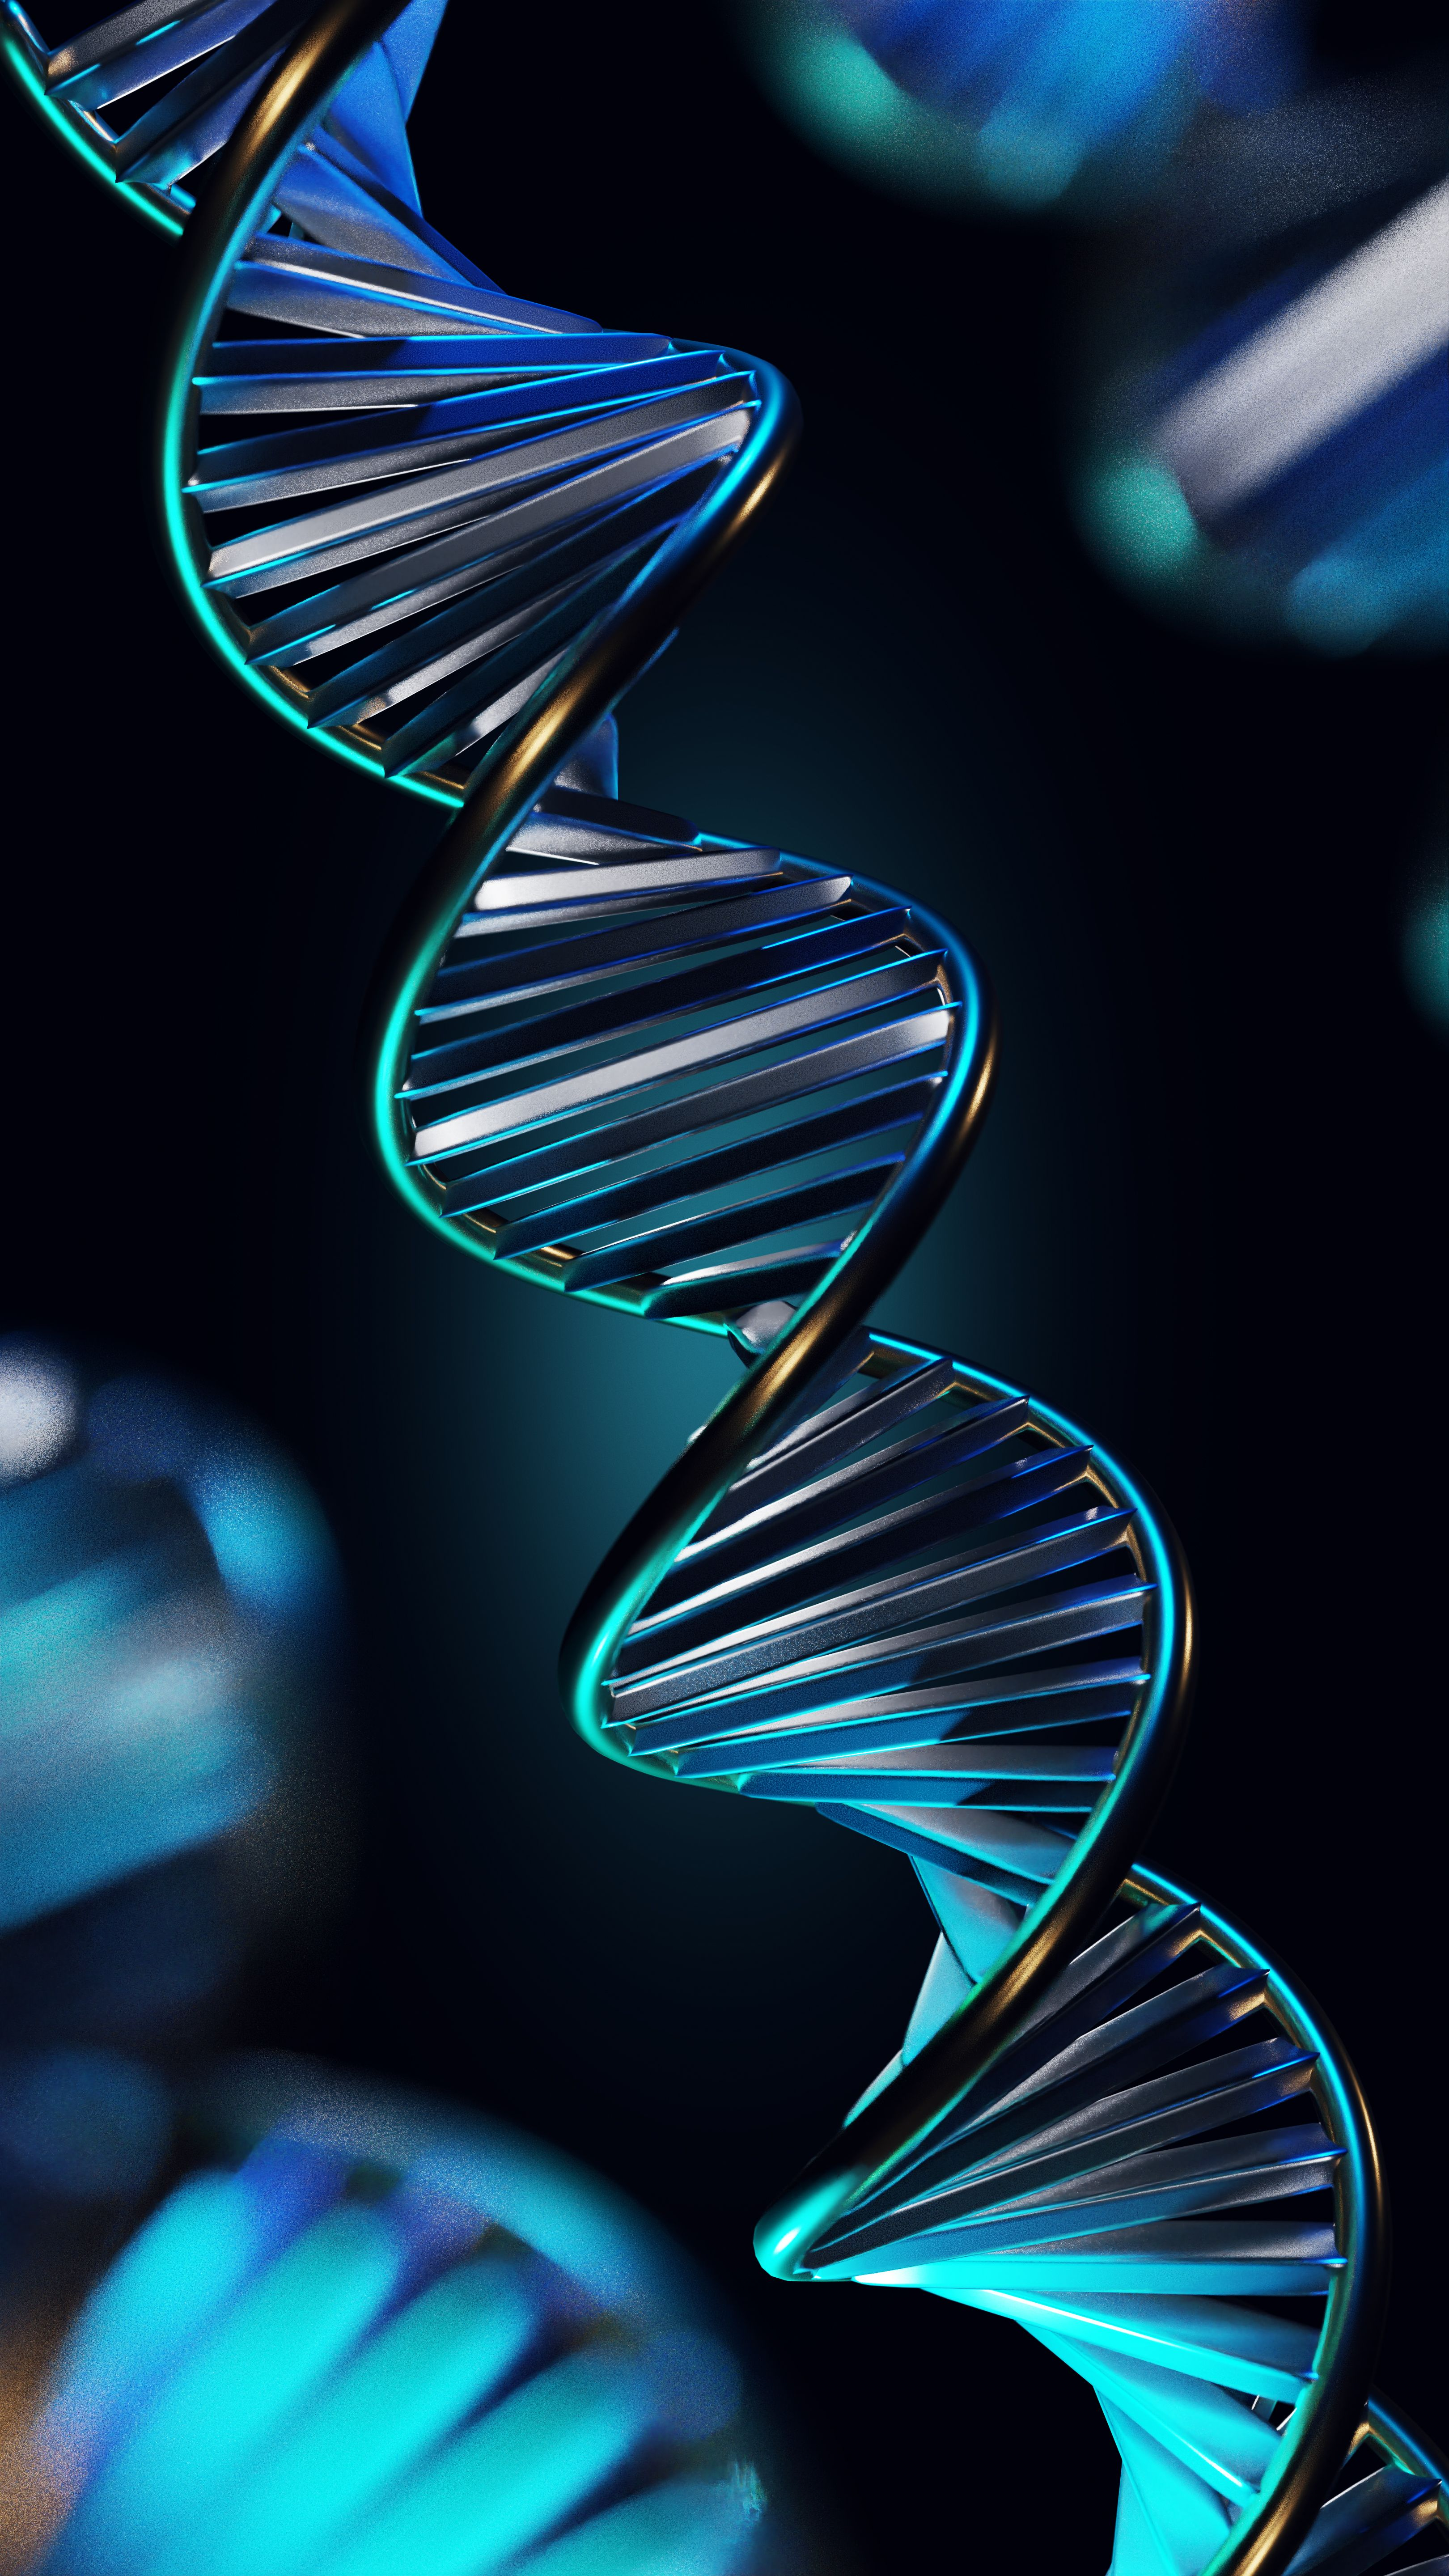 Dna Mobile Hd Wallpaper Medical Wallpaper Biology Art Robot Wallpaper Android hd wallpapers collection